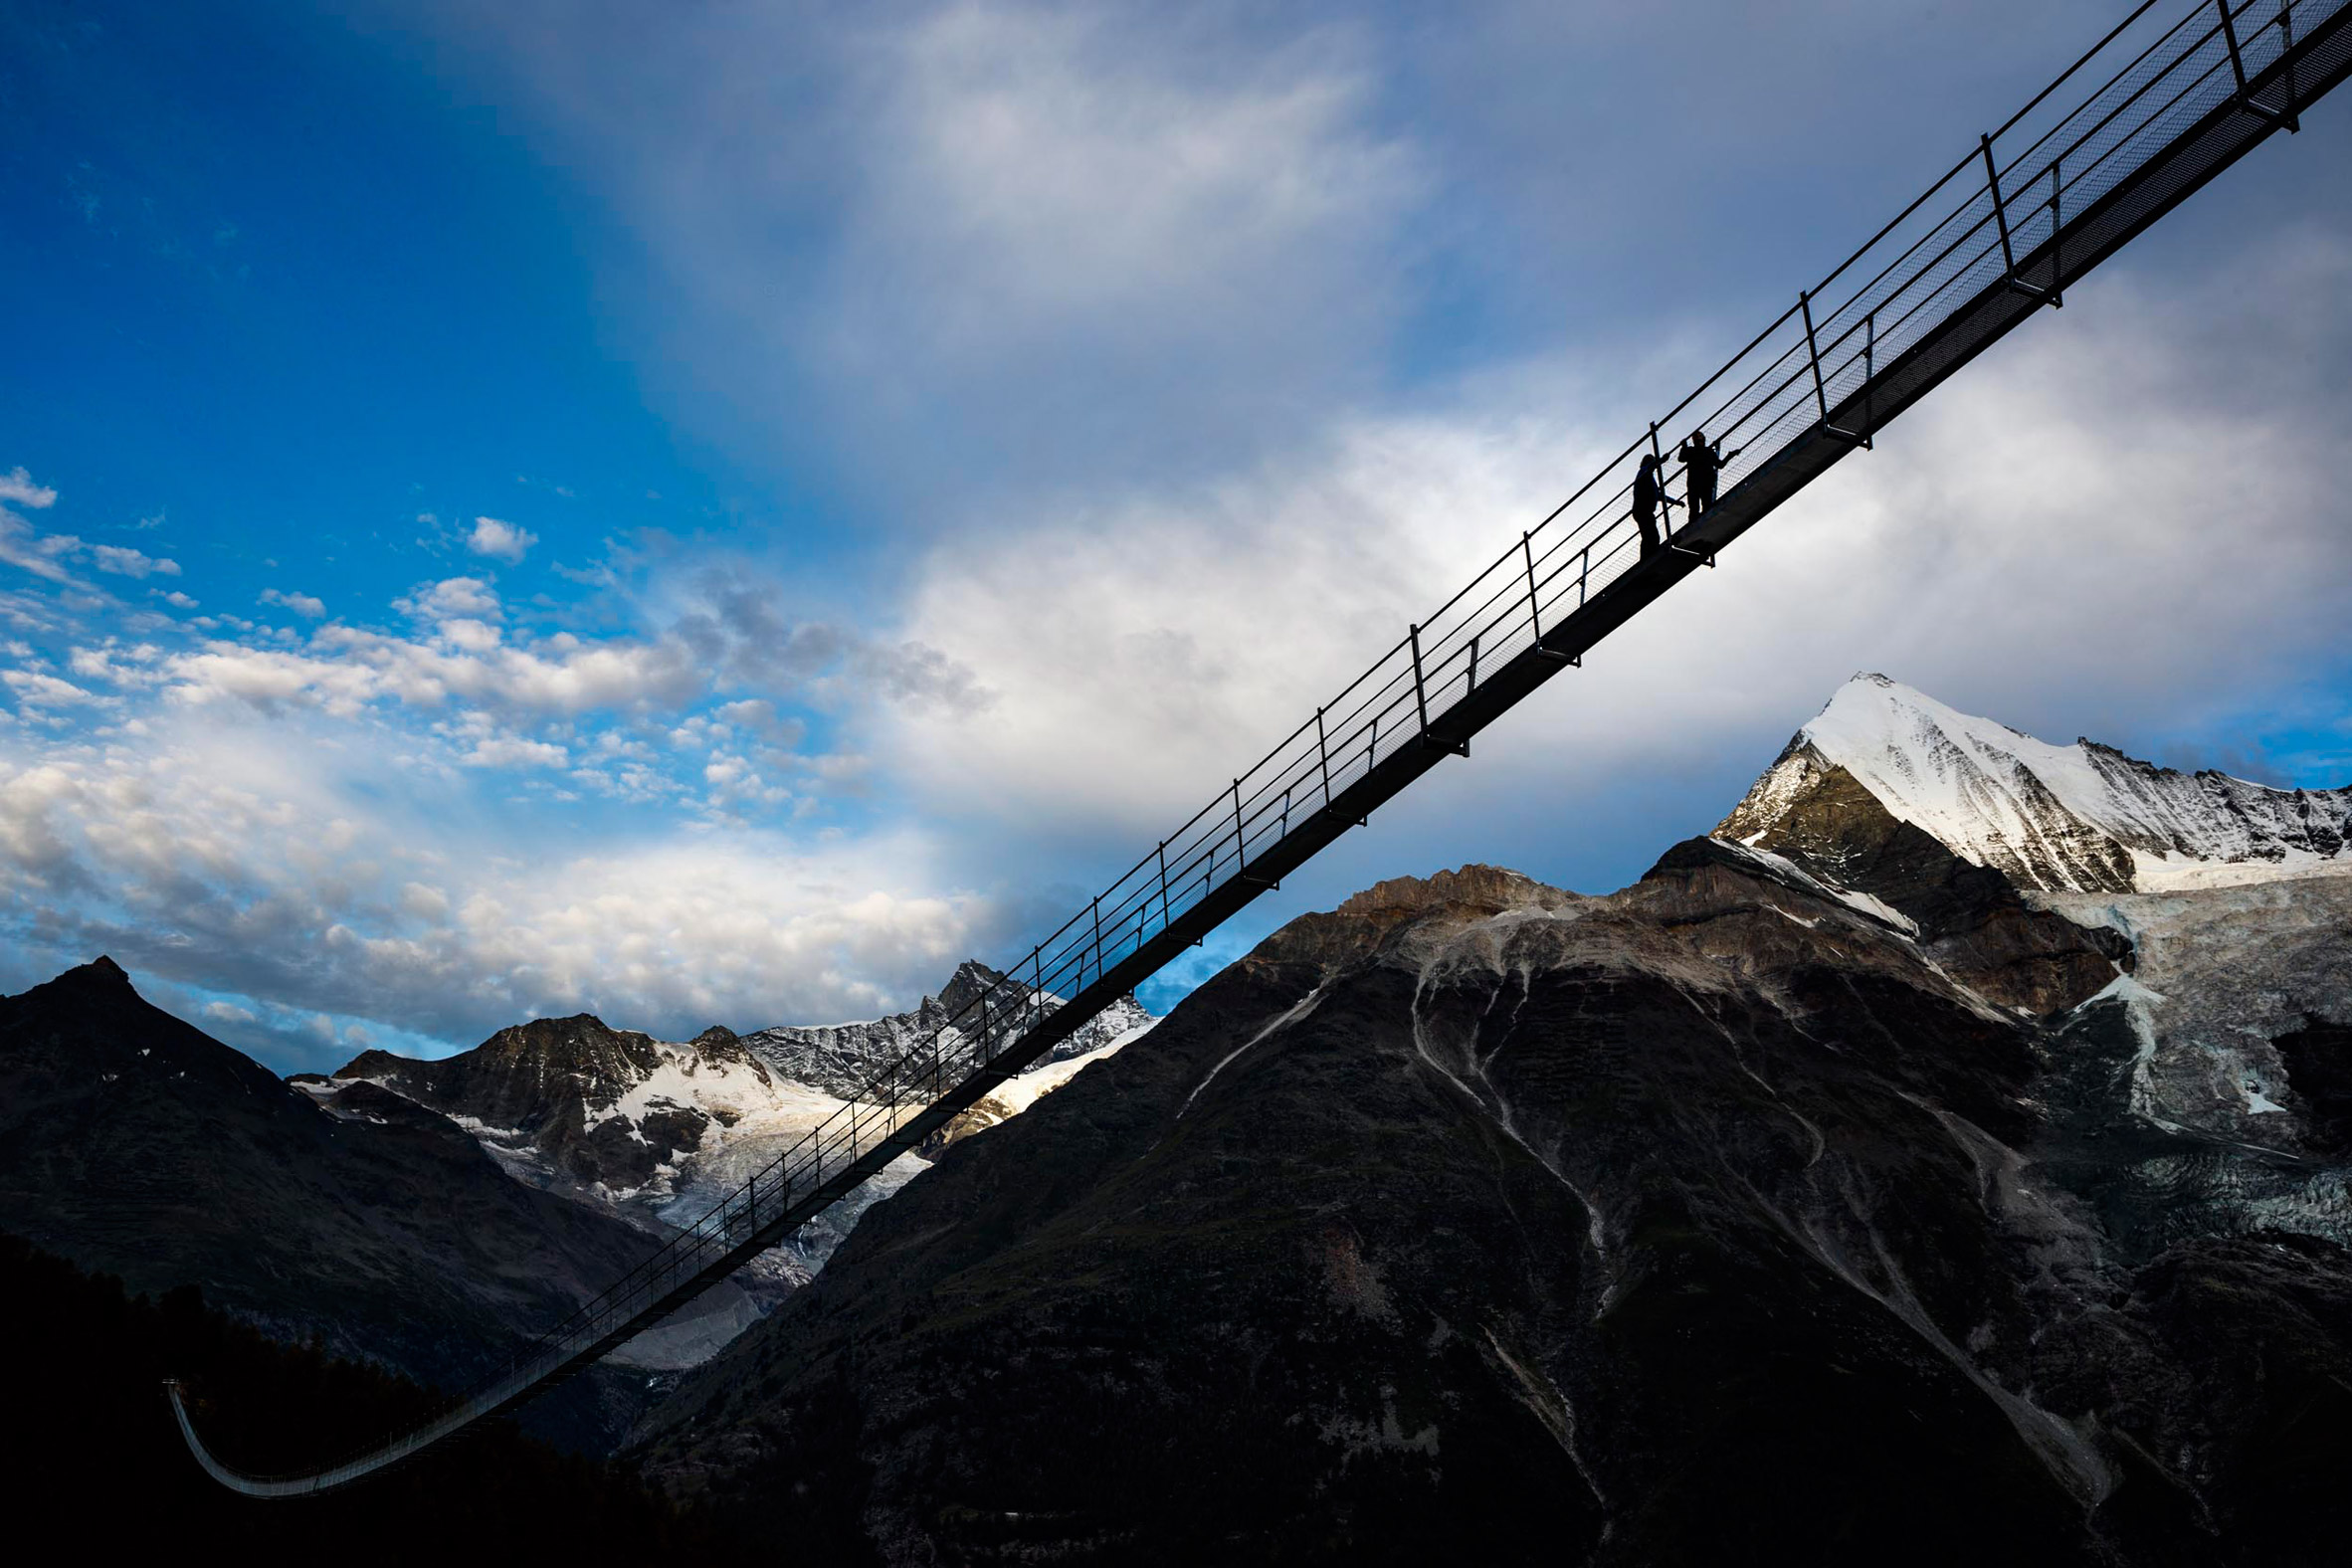 charles-kuonen-suspension-bridge-switzerland_dezeen_2364_col_5